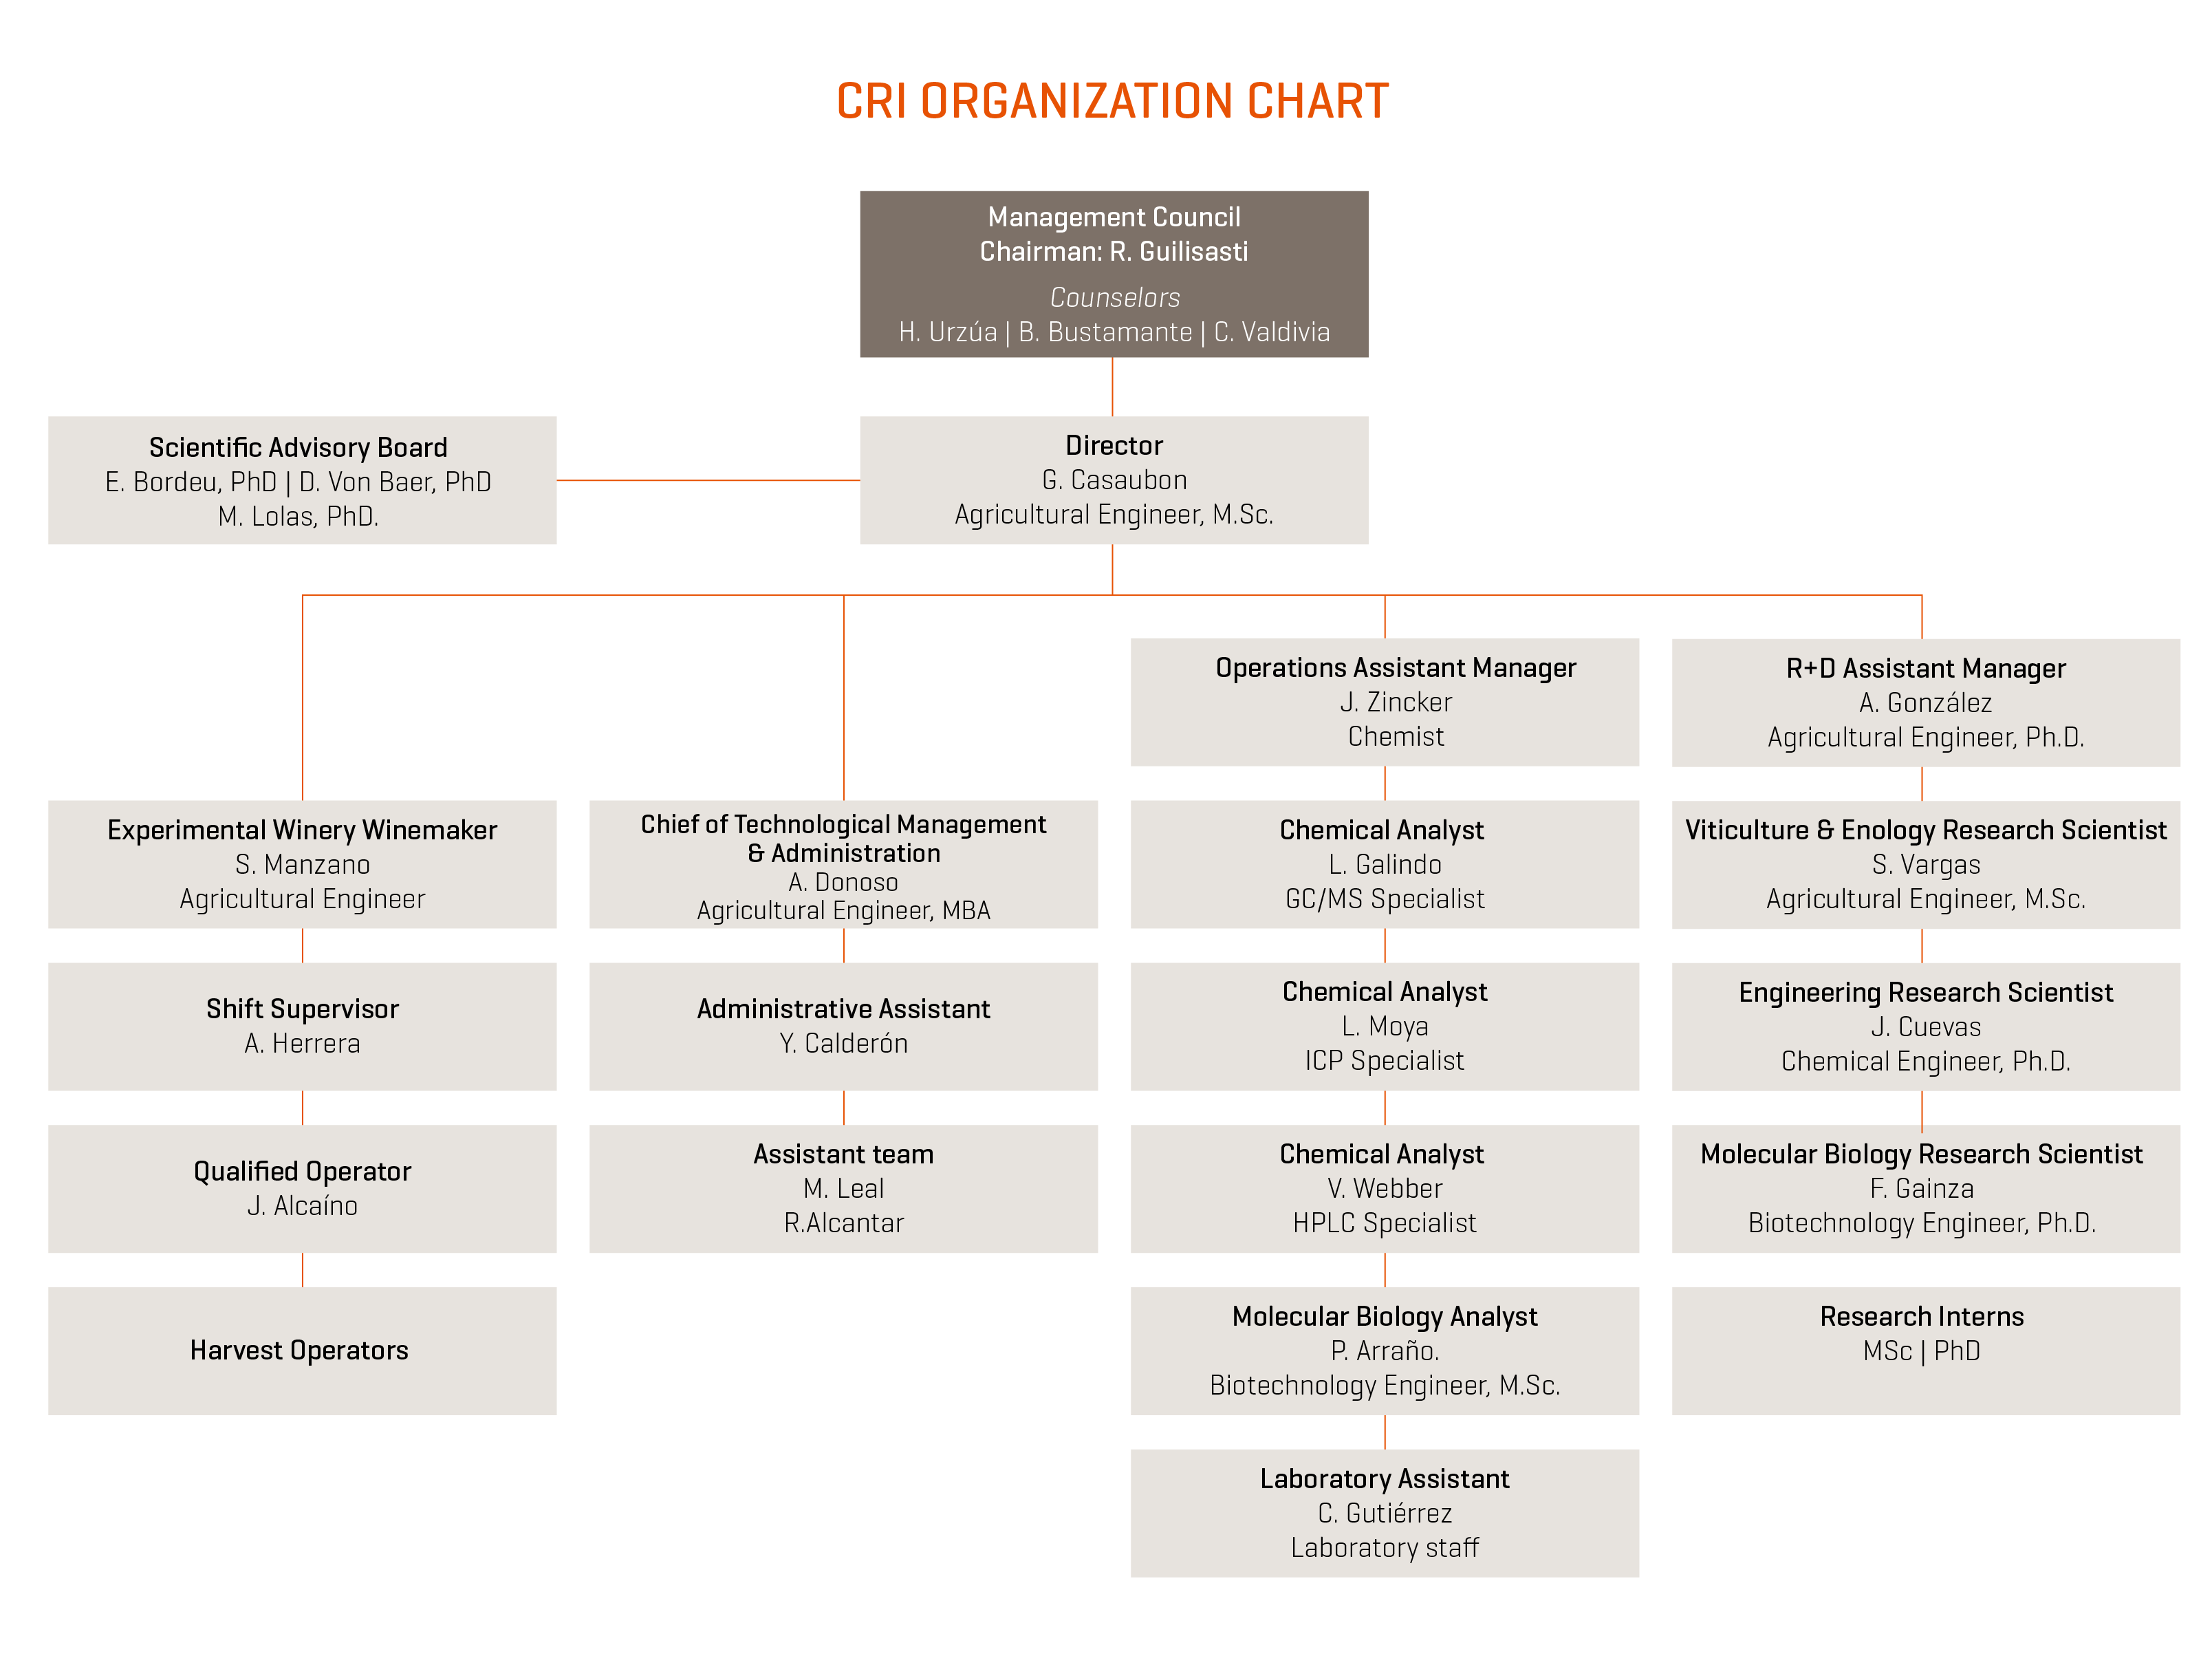 organisational analysis Organizational analysis the analysis and comparison of organizations, especially their structure and the processes of decisionmaking within themit is thus concerned with job design and the way work is organized (see work organization) in an organization.